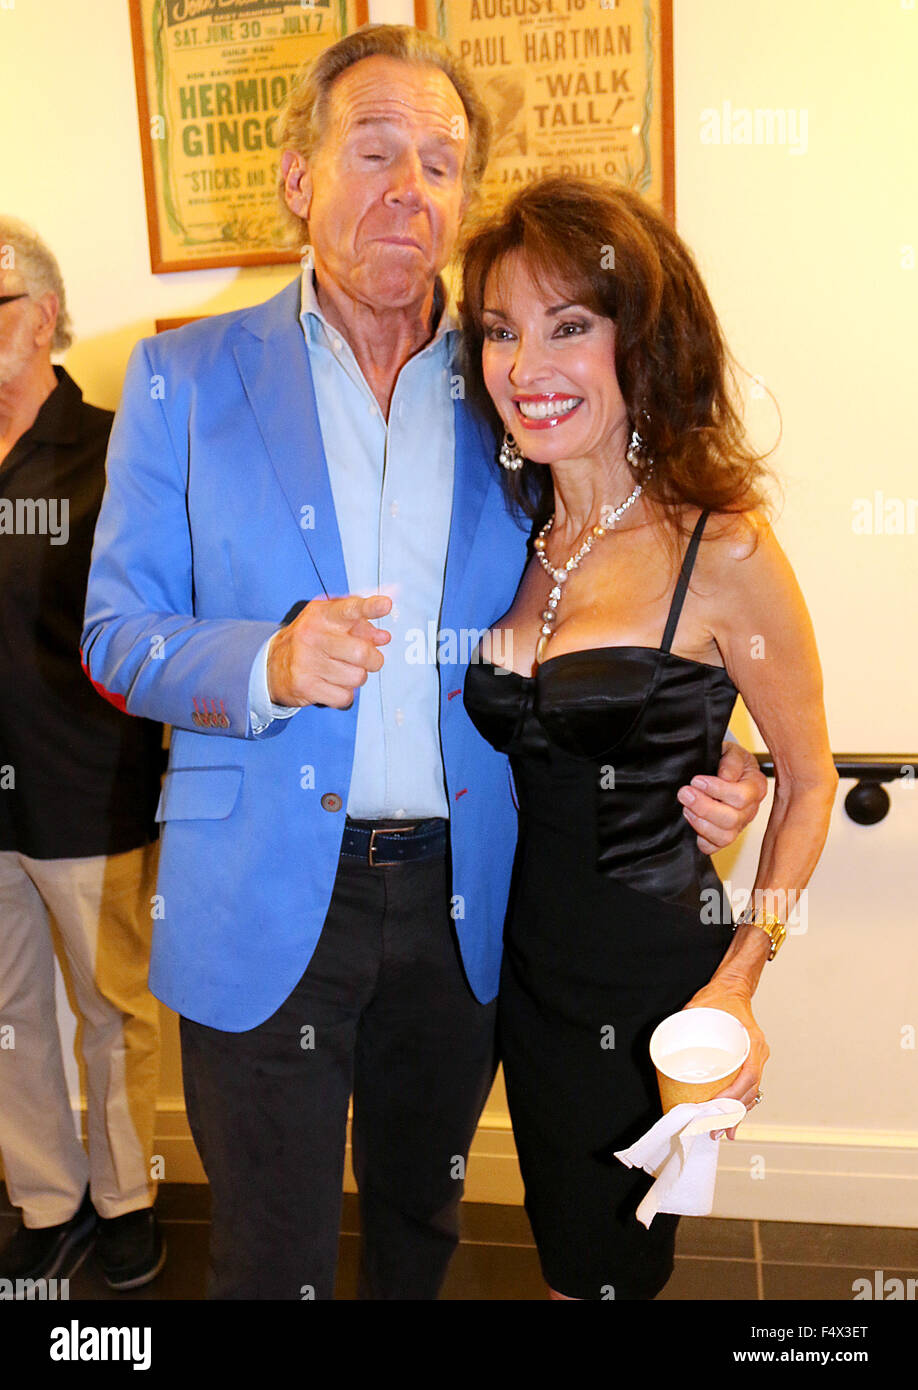 'Celebrity Autobiography' at Guild Hall in East Hampton  Featuring: Bill Boggs, Susan Lucci Where: East - Stock Image